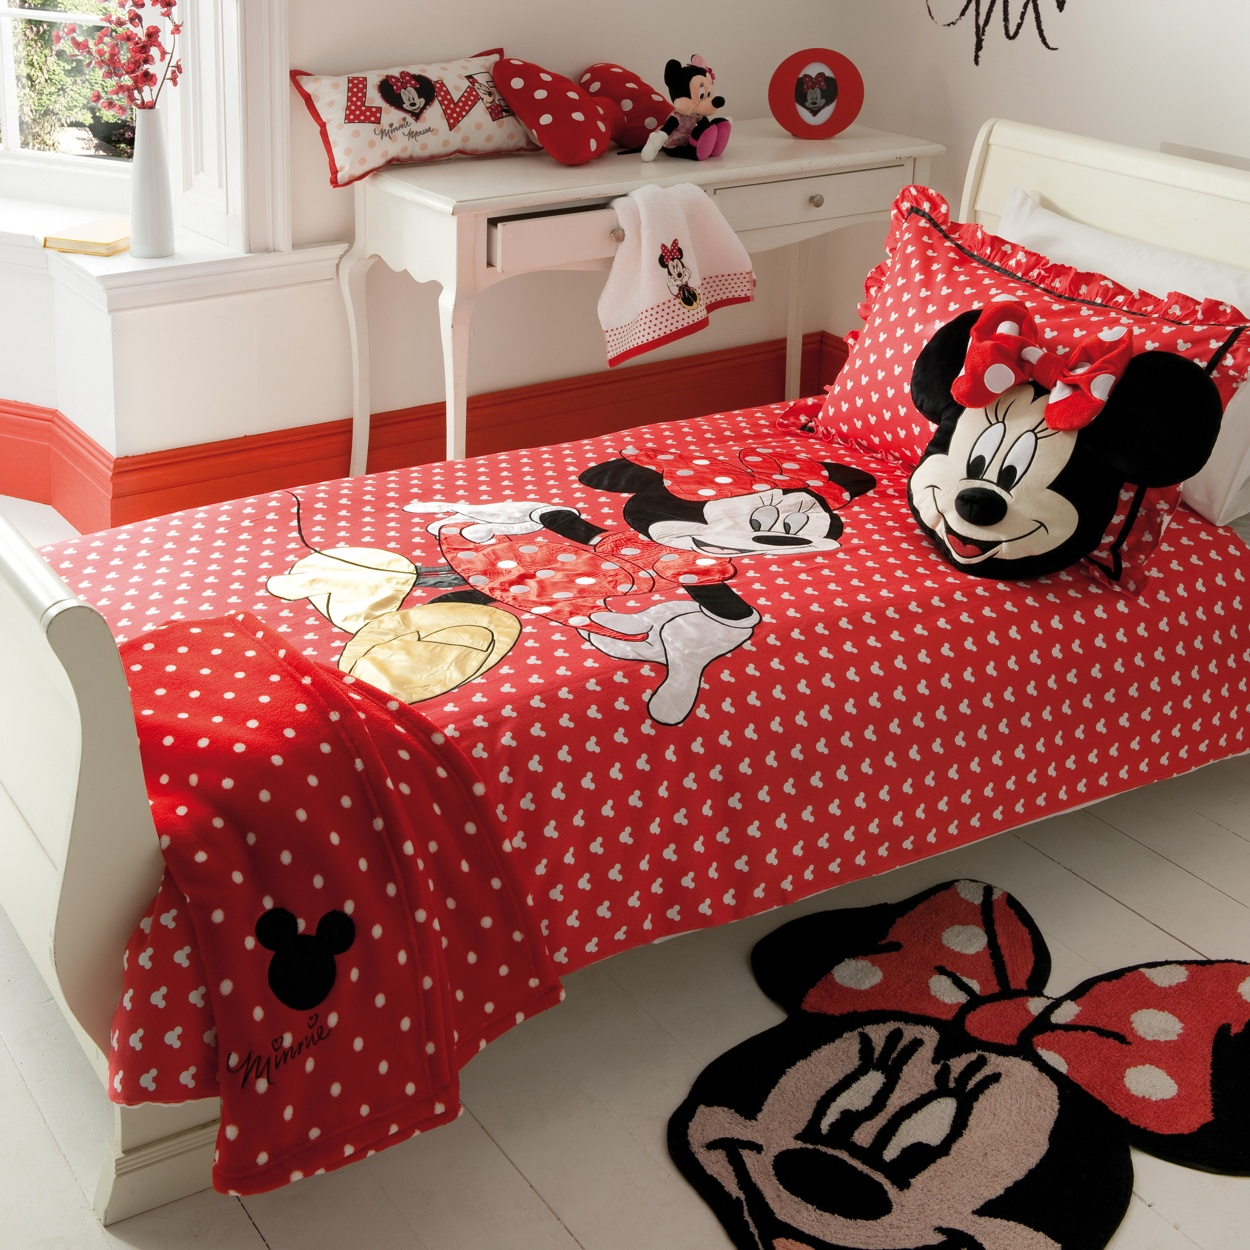 Featured Image of Children Bedroom Mickey Mouse Interior Theme